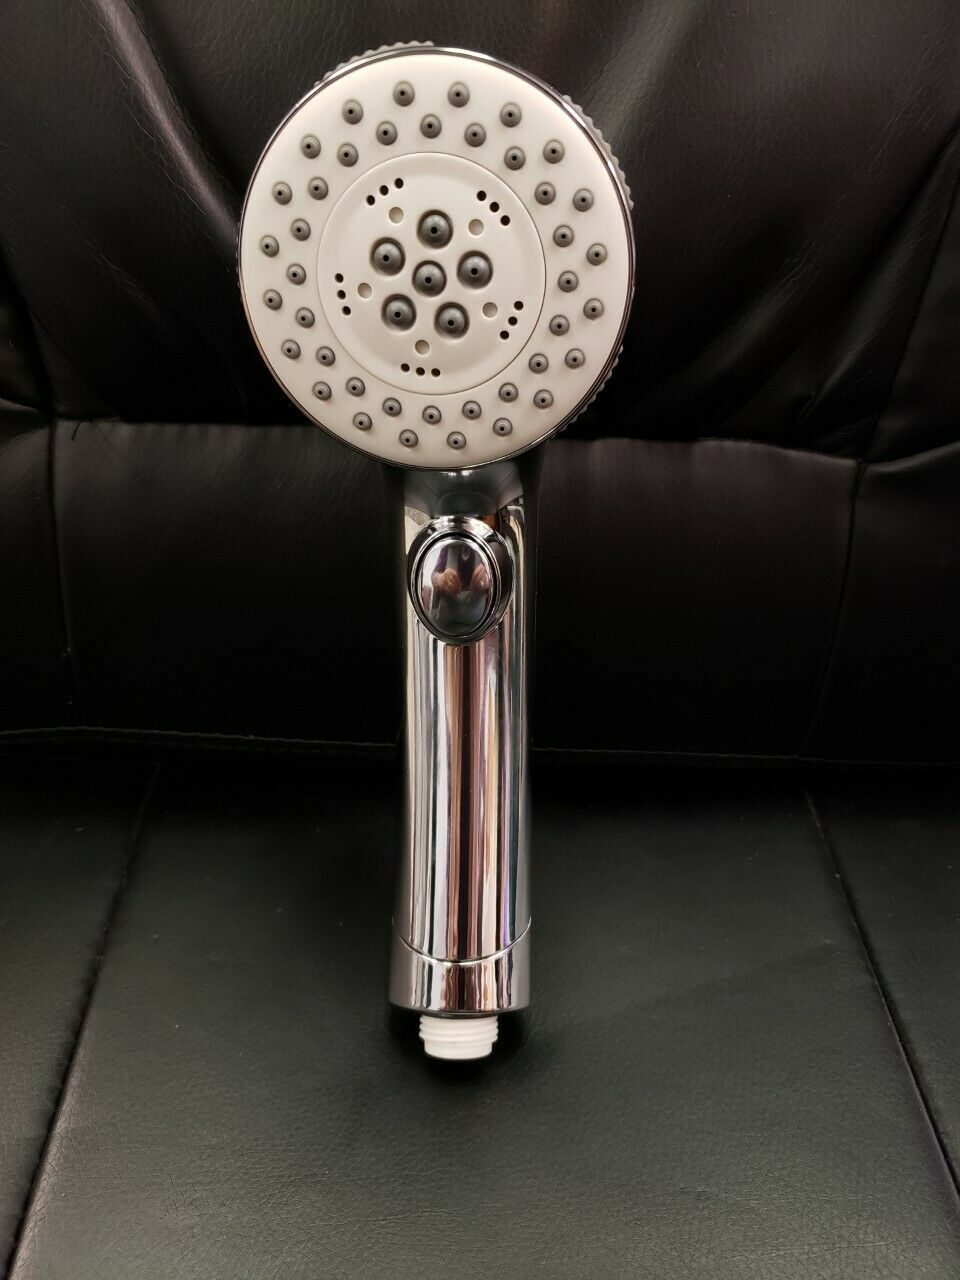 Primary image for 5 Function Hand Held Shower Head - Chrome Finish